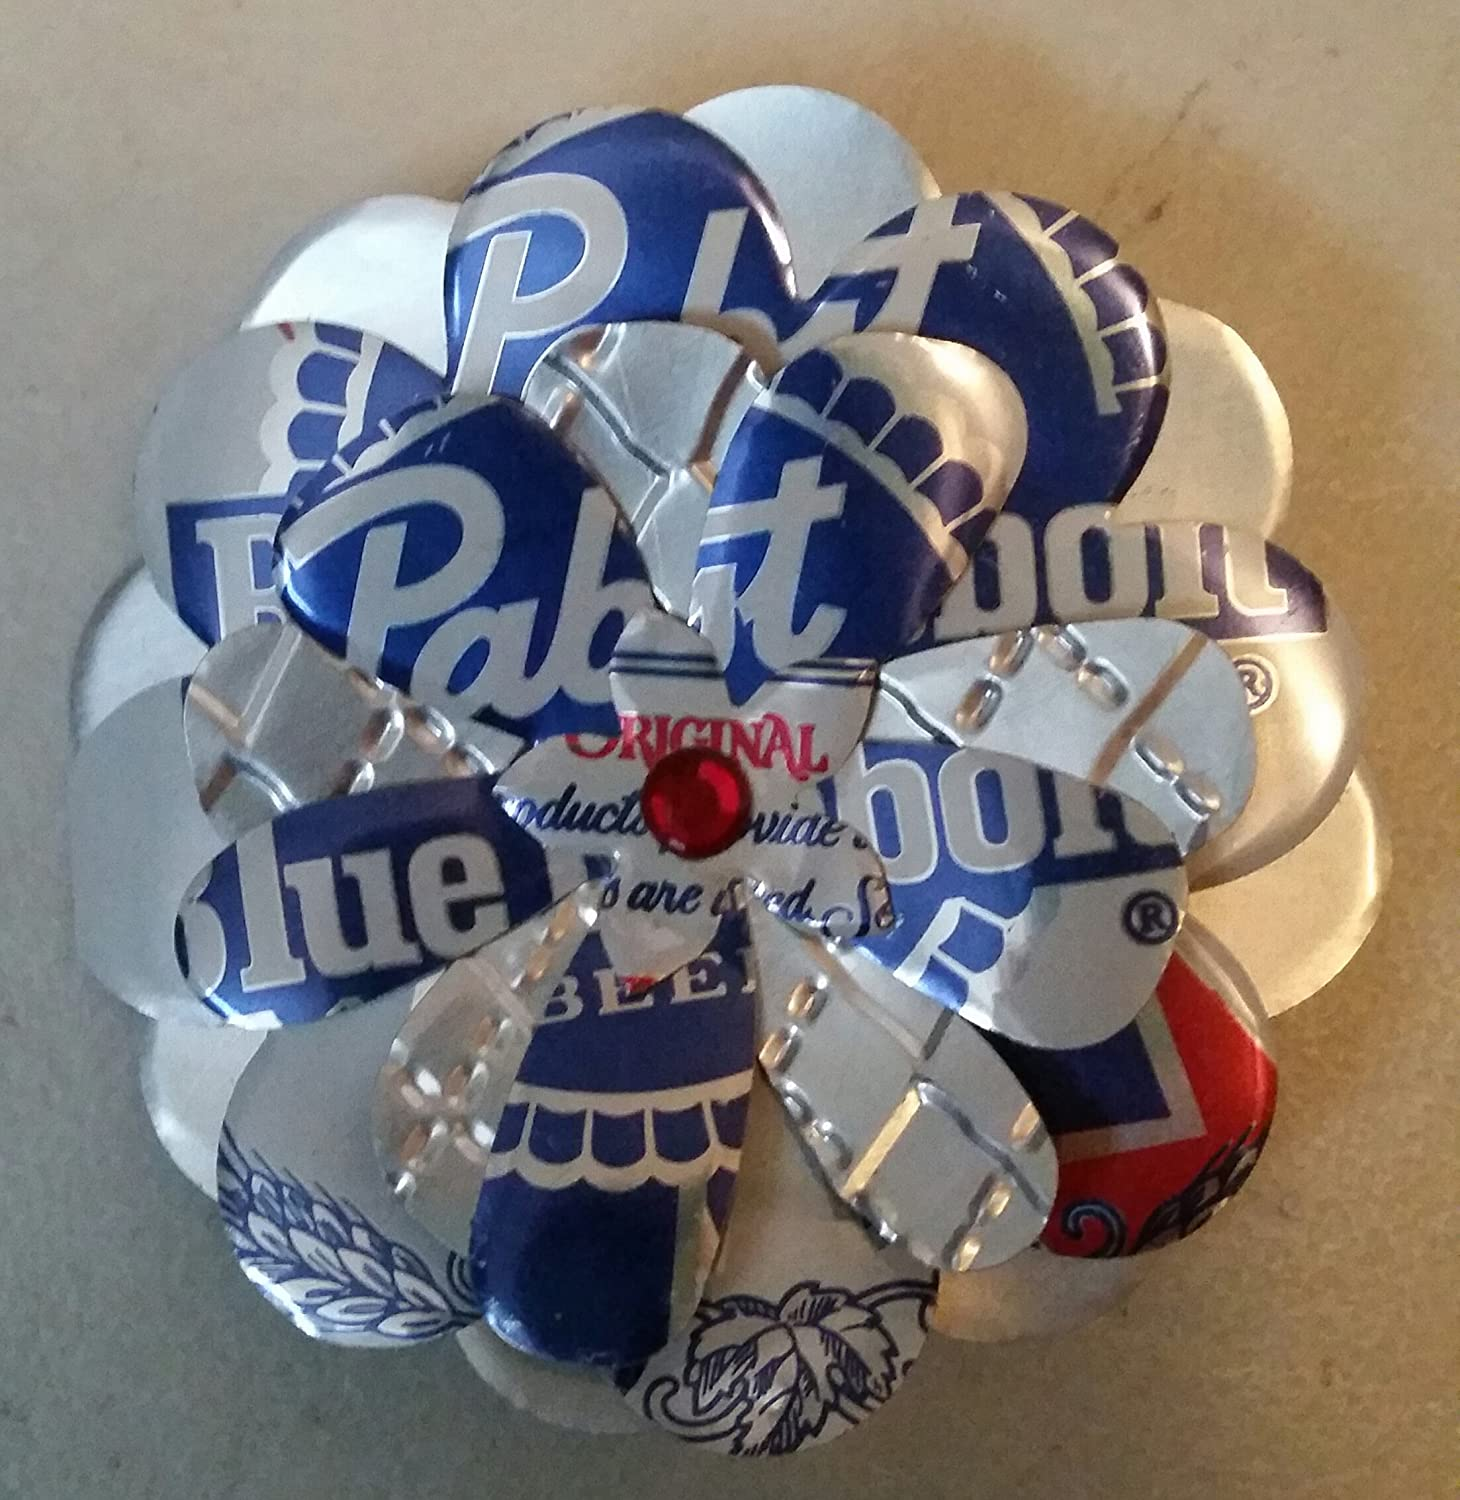 PBR Pabst Blue Ribbon Beer Can Flower Magnet